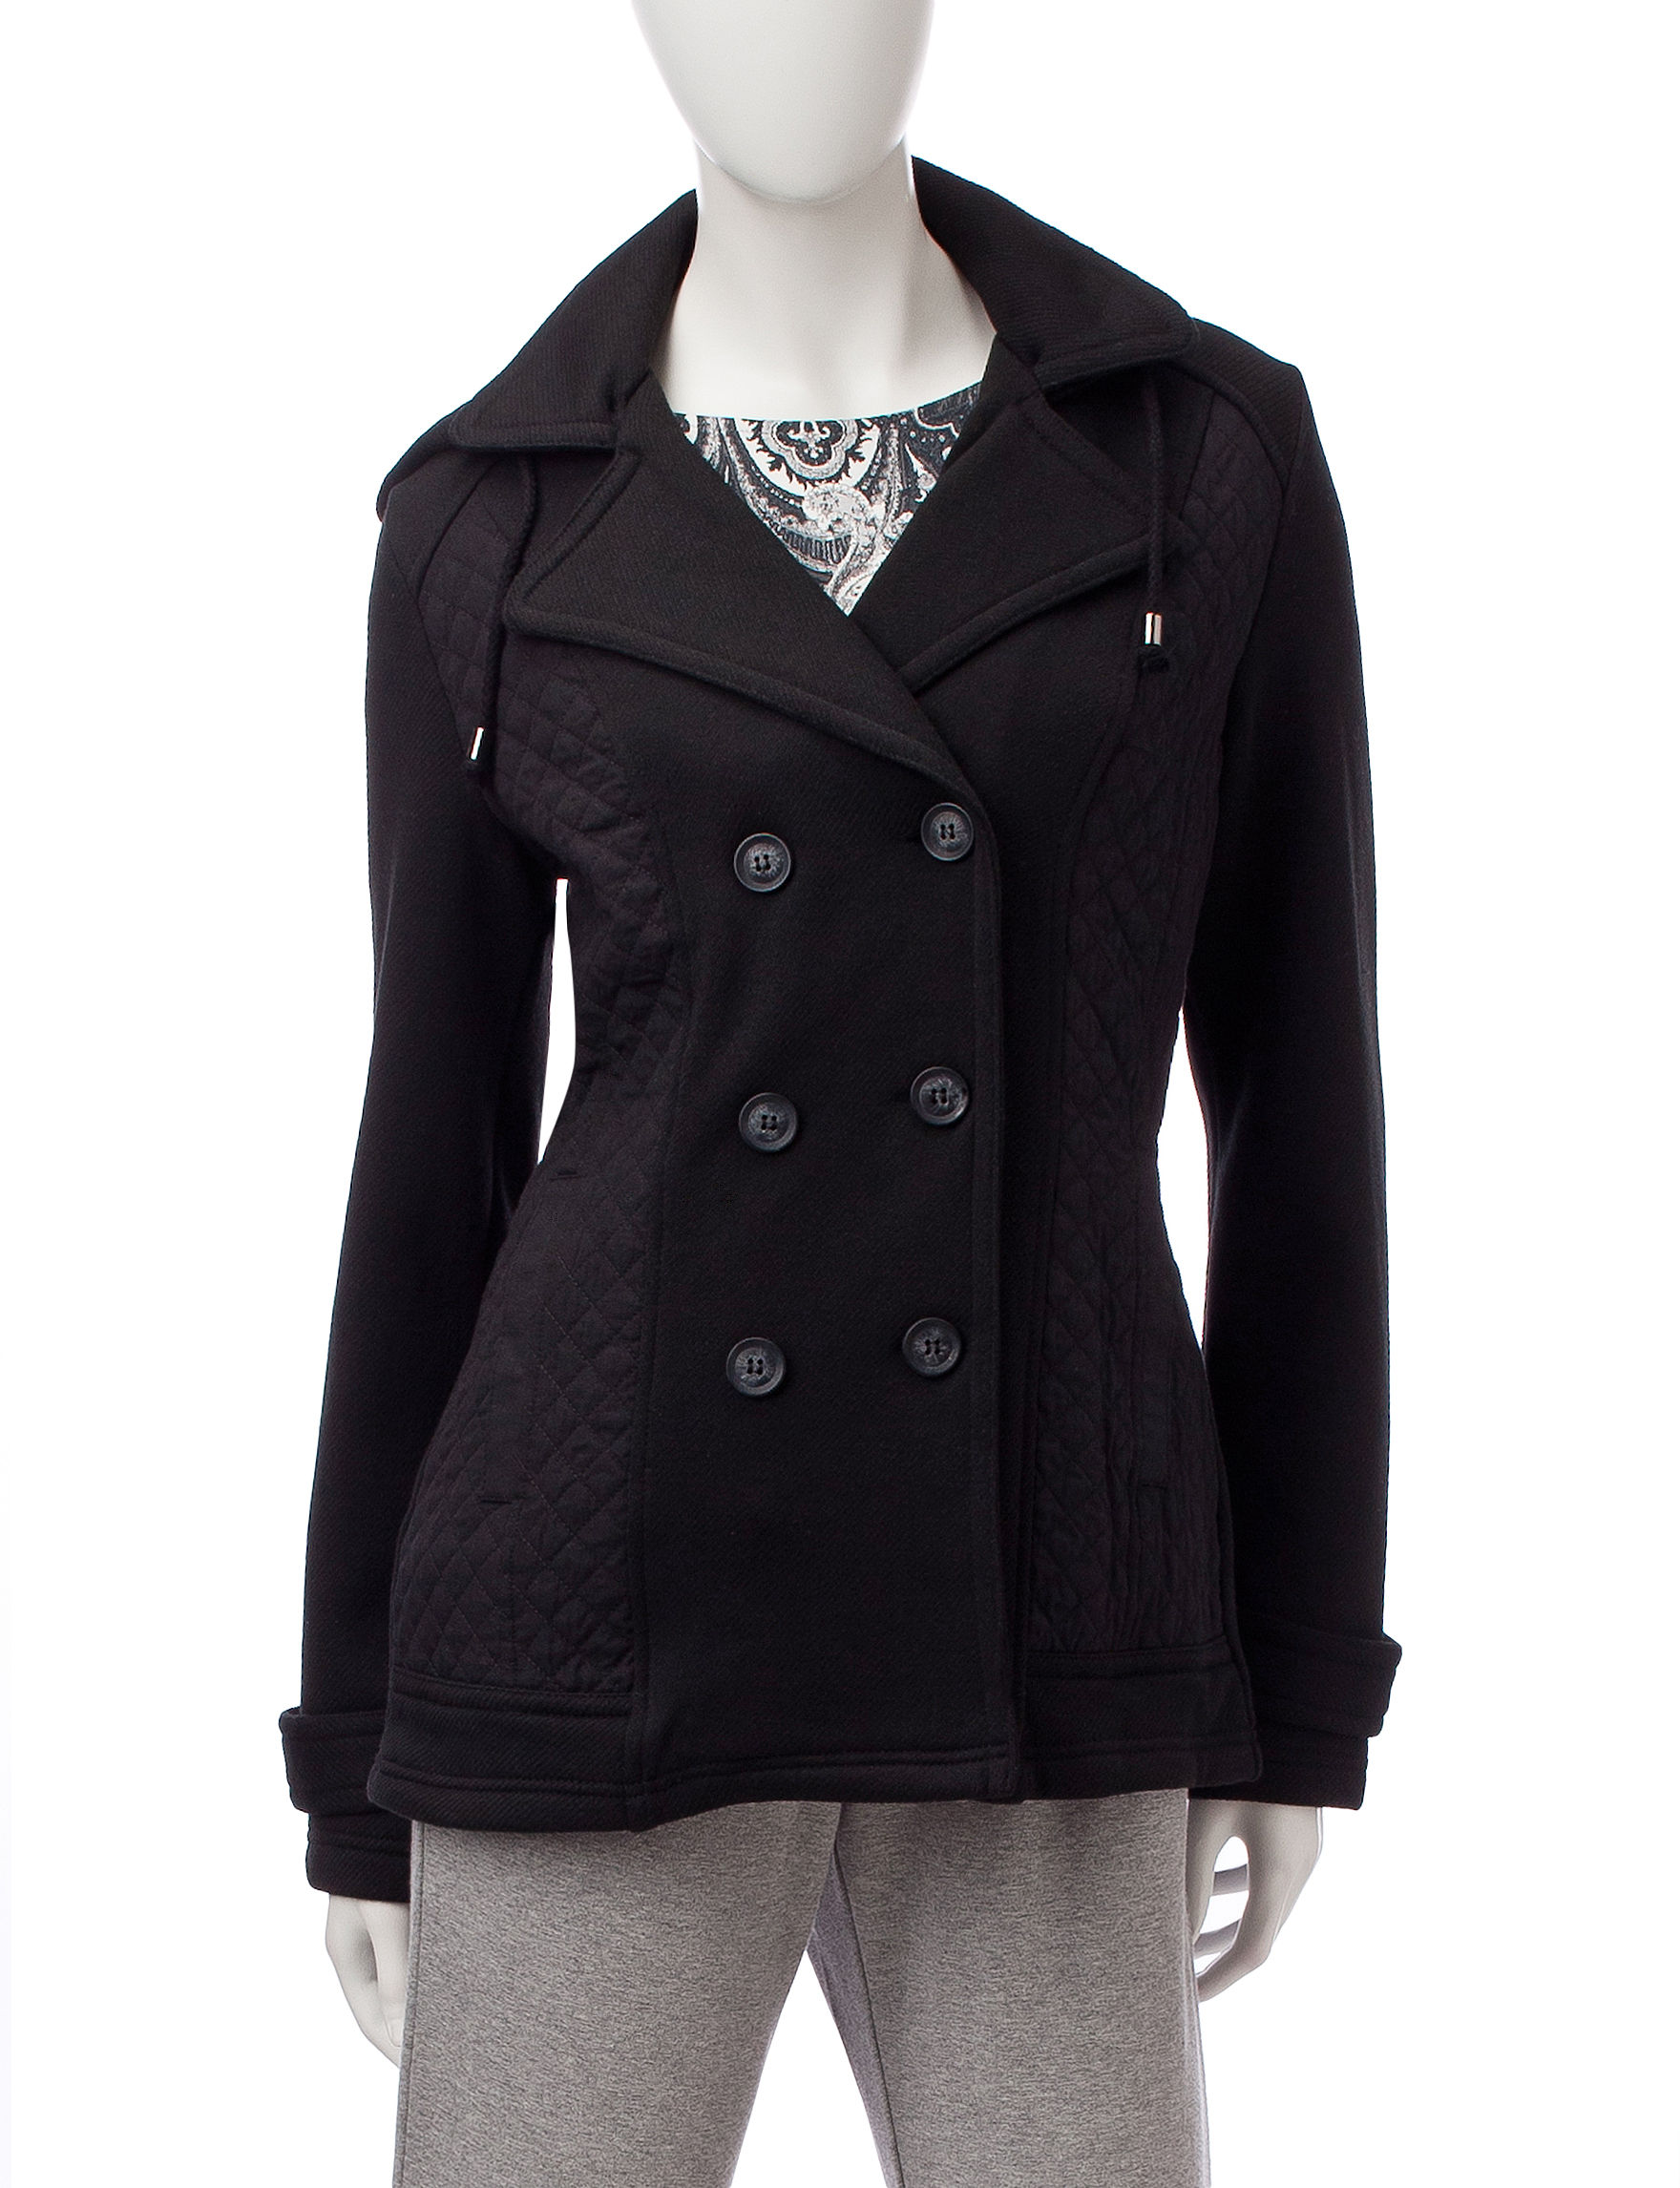 Valerie Stevens Black Fleece & Soft Shell Jackets